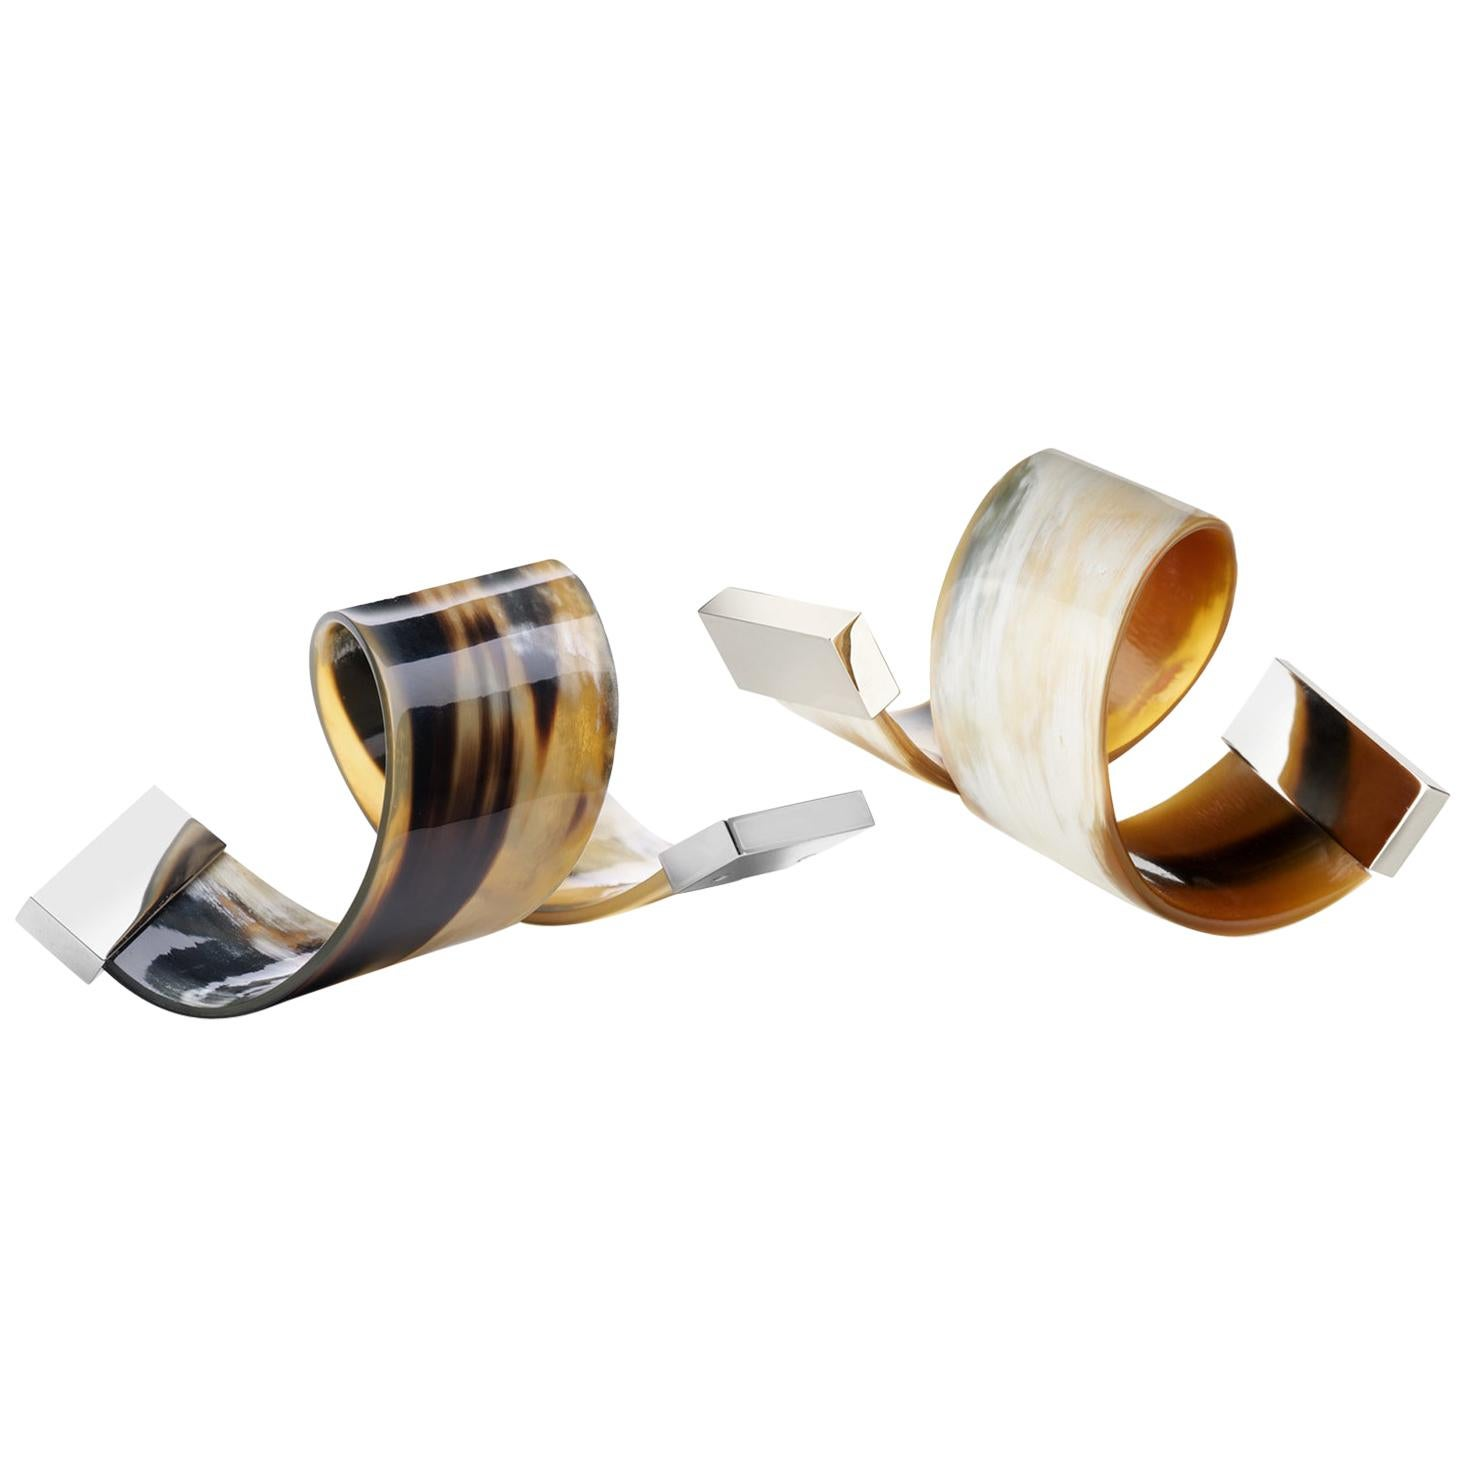 Set of 2 Napkin Rings in Corno Italiano and Stainless Steeel, Mod. 209